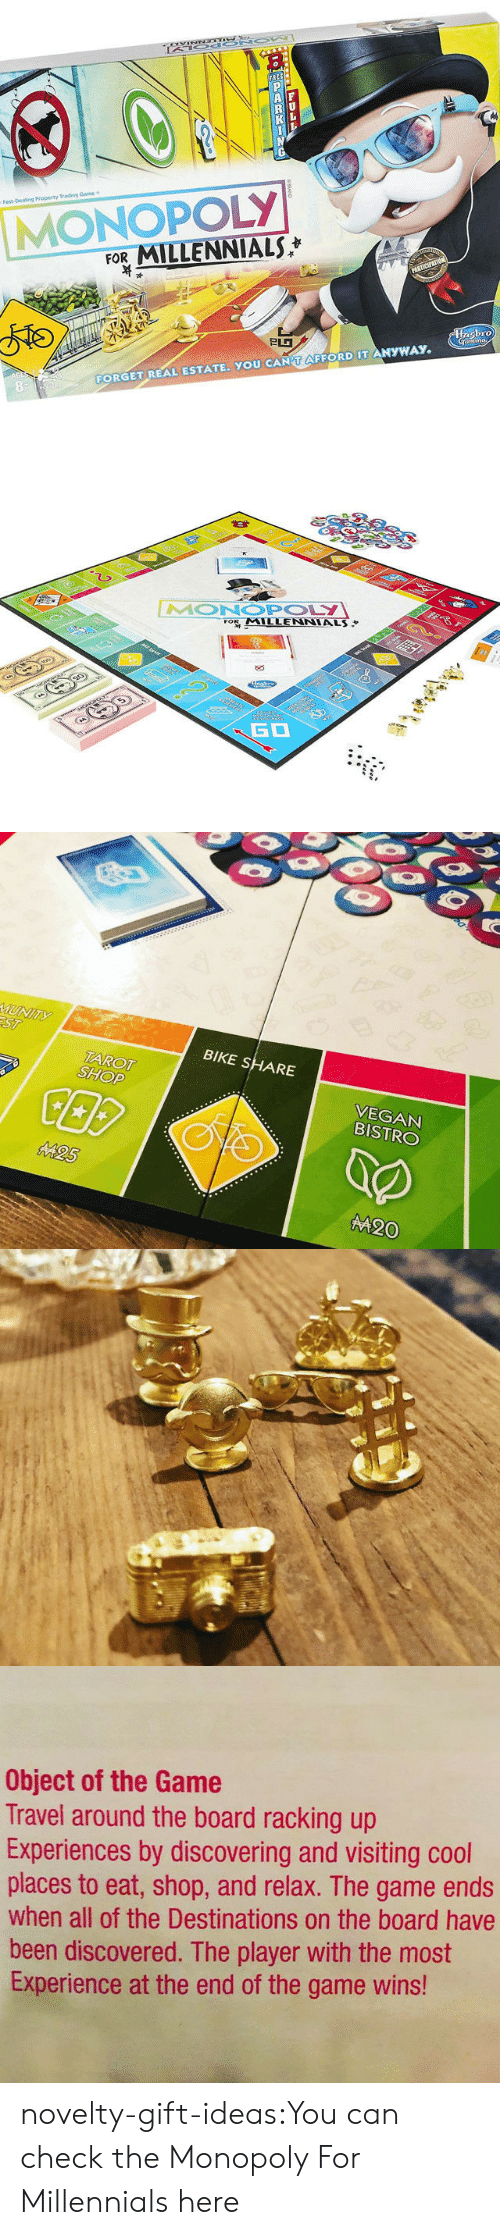 Monopoly: P  AF  K  Fast-Dealing Property Trading Game  MONOPOLY  FOR MILLENNIALS  PRTICIPATION  830  FORGET REAL ESTATE. YOU CAN T AFFORD IT ANYWAY  Hnsbro  Gomina  LL  8AND   E  2  ত  MONOPOLY  FOR MILLENNIALS  ART Ser  www  0arars9  23  GO   MUNITY  ST  BIKE SHARE  VEGAN  BISTRO  TAROT  SHOP  M25  M20   Object of the Game  Travel around the board racking up  Experiences by discovering and visiting cool  places to eat, shop, and relax. The game ends  when all of the Destinations on the board have  been discovered. The player with the most  Experience at the end of the game wins! novelty-gift-ideas:You can check theMonopoly For Millennialshere